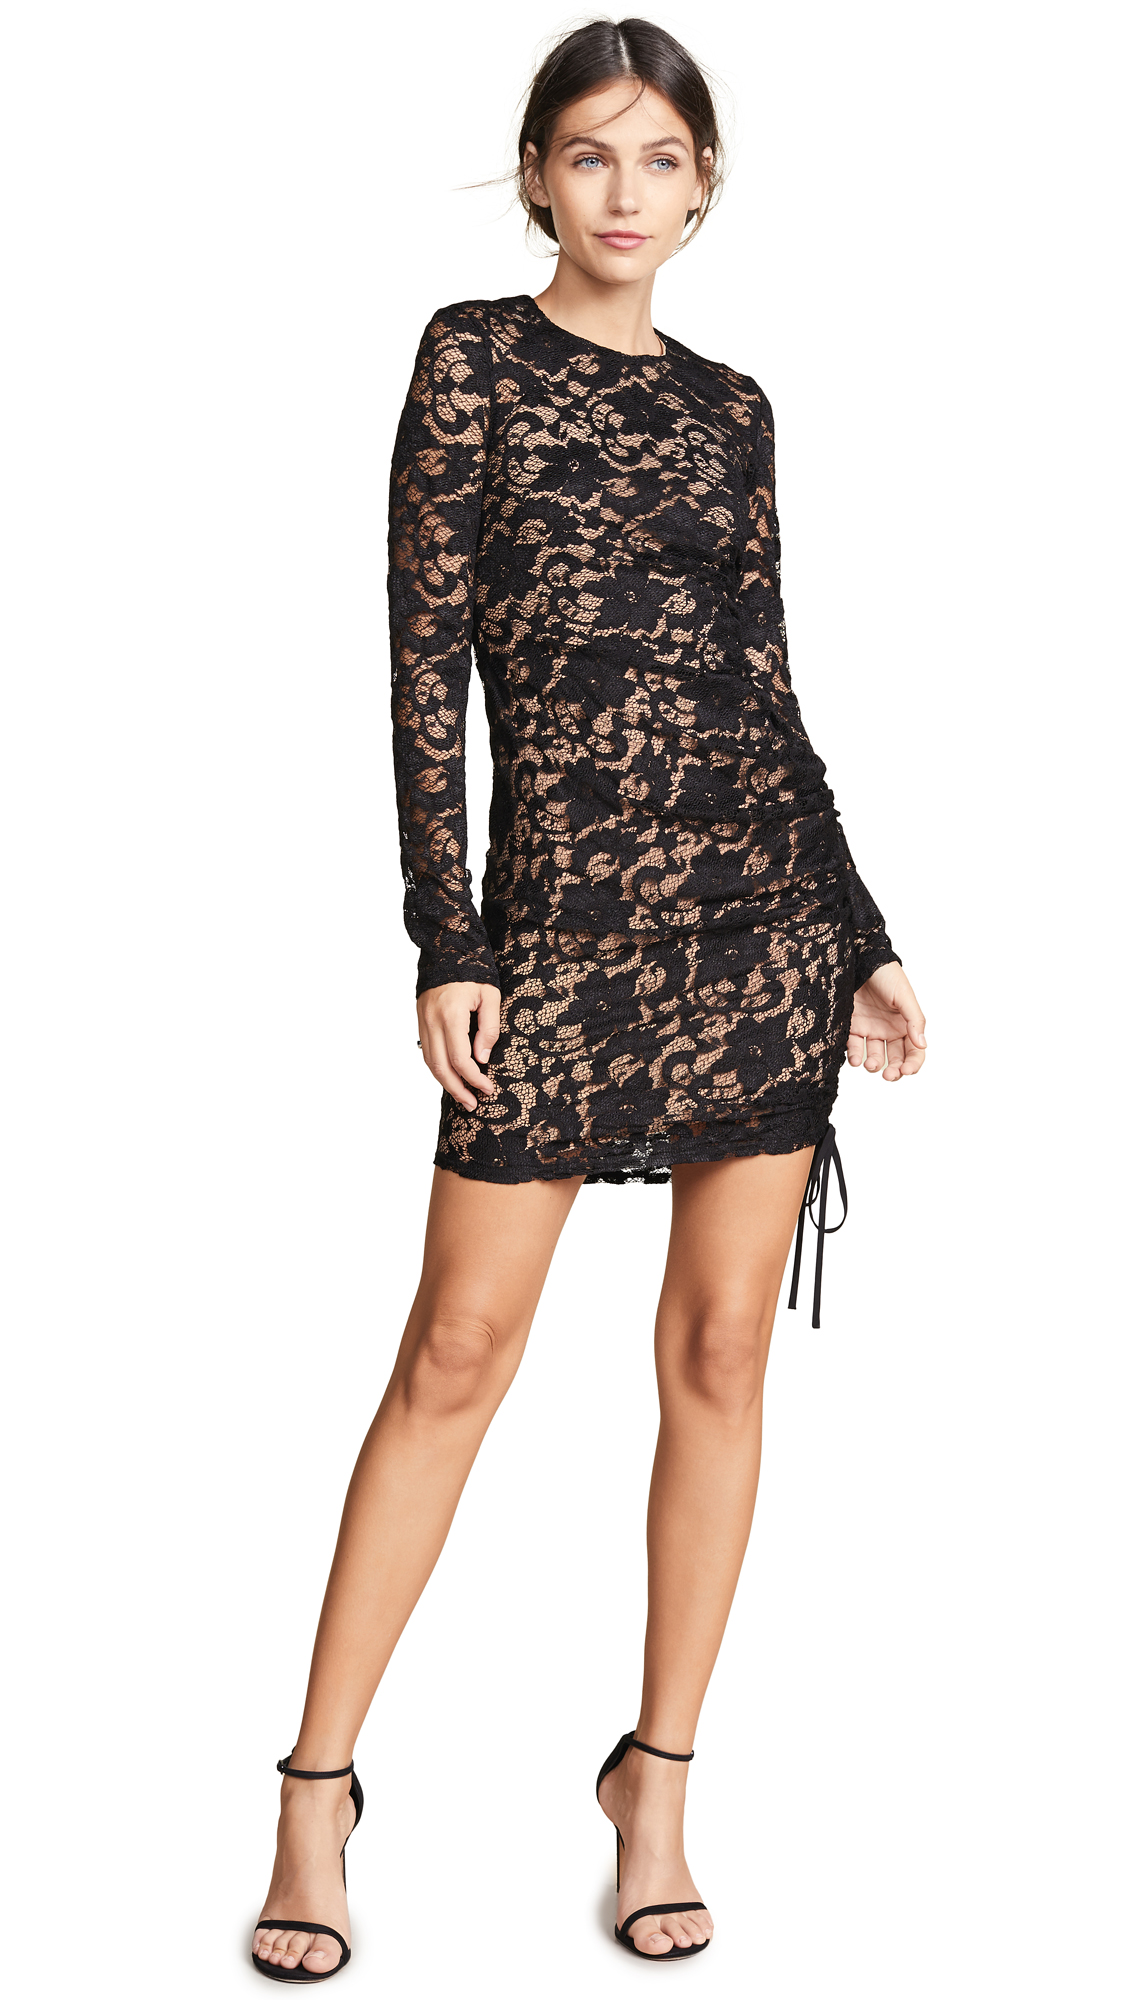 BAILEY44 Disinformation Ruched Drawstring Lace Dress in Black